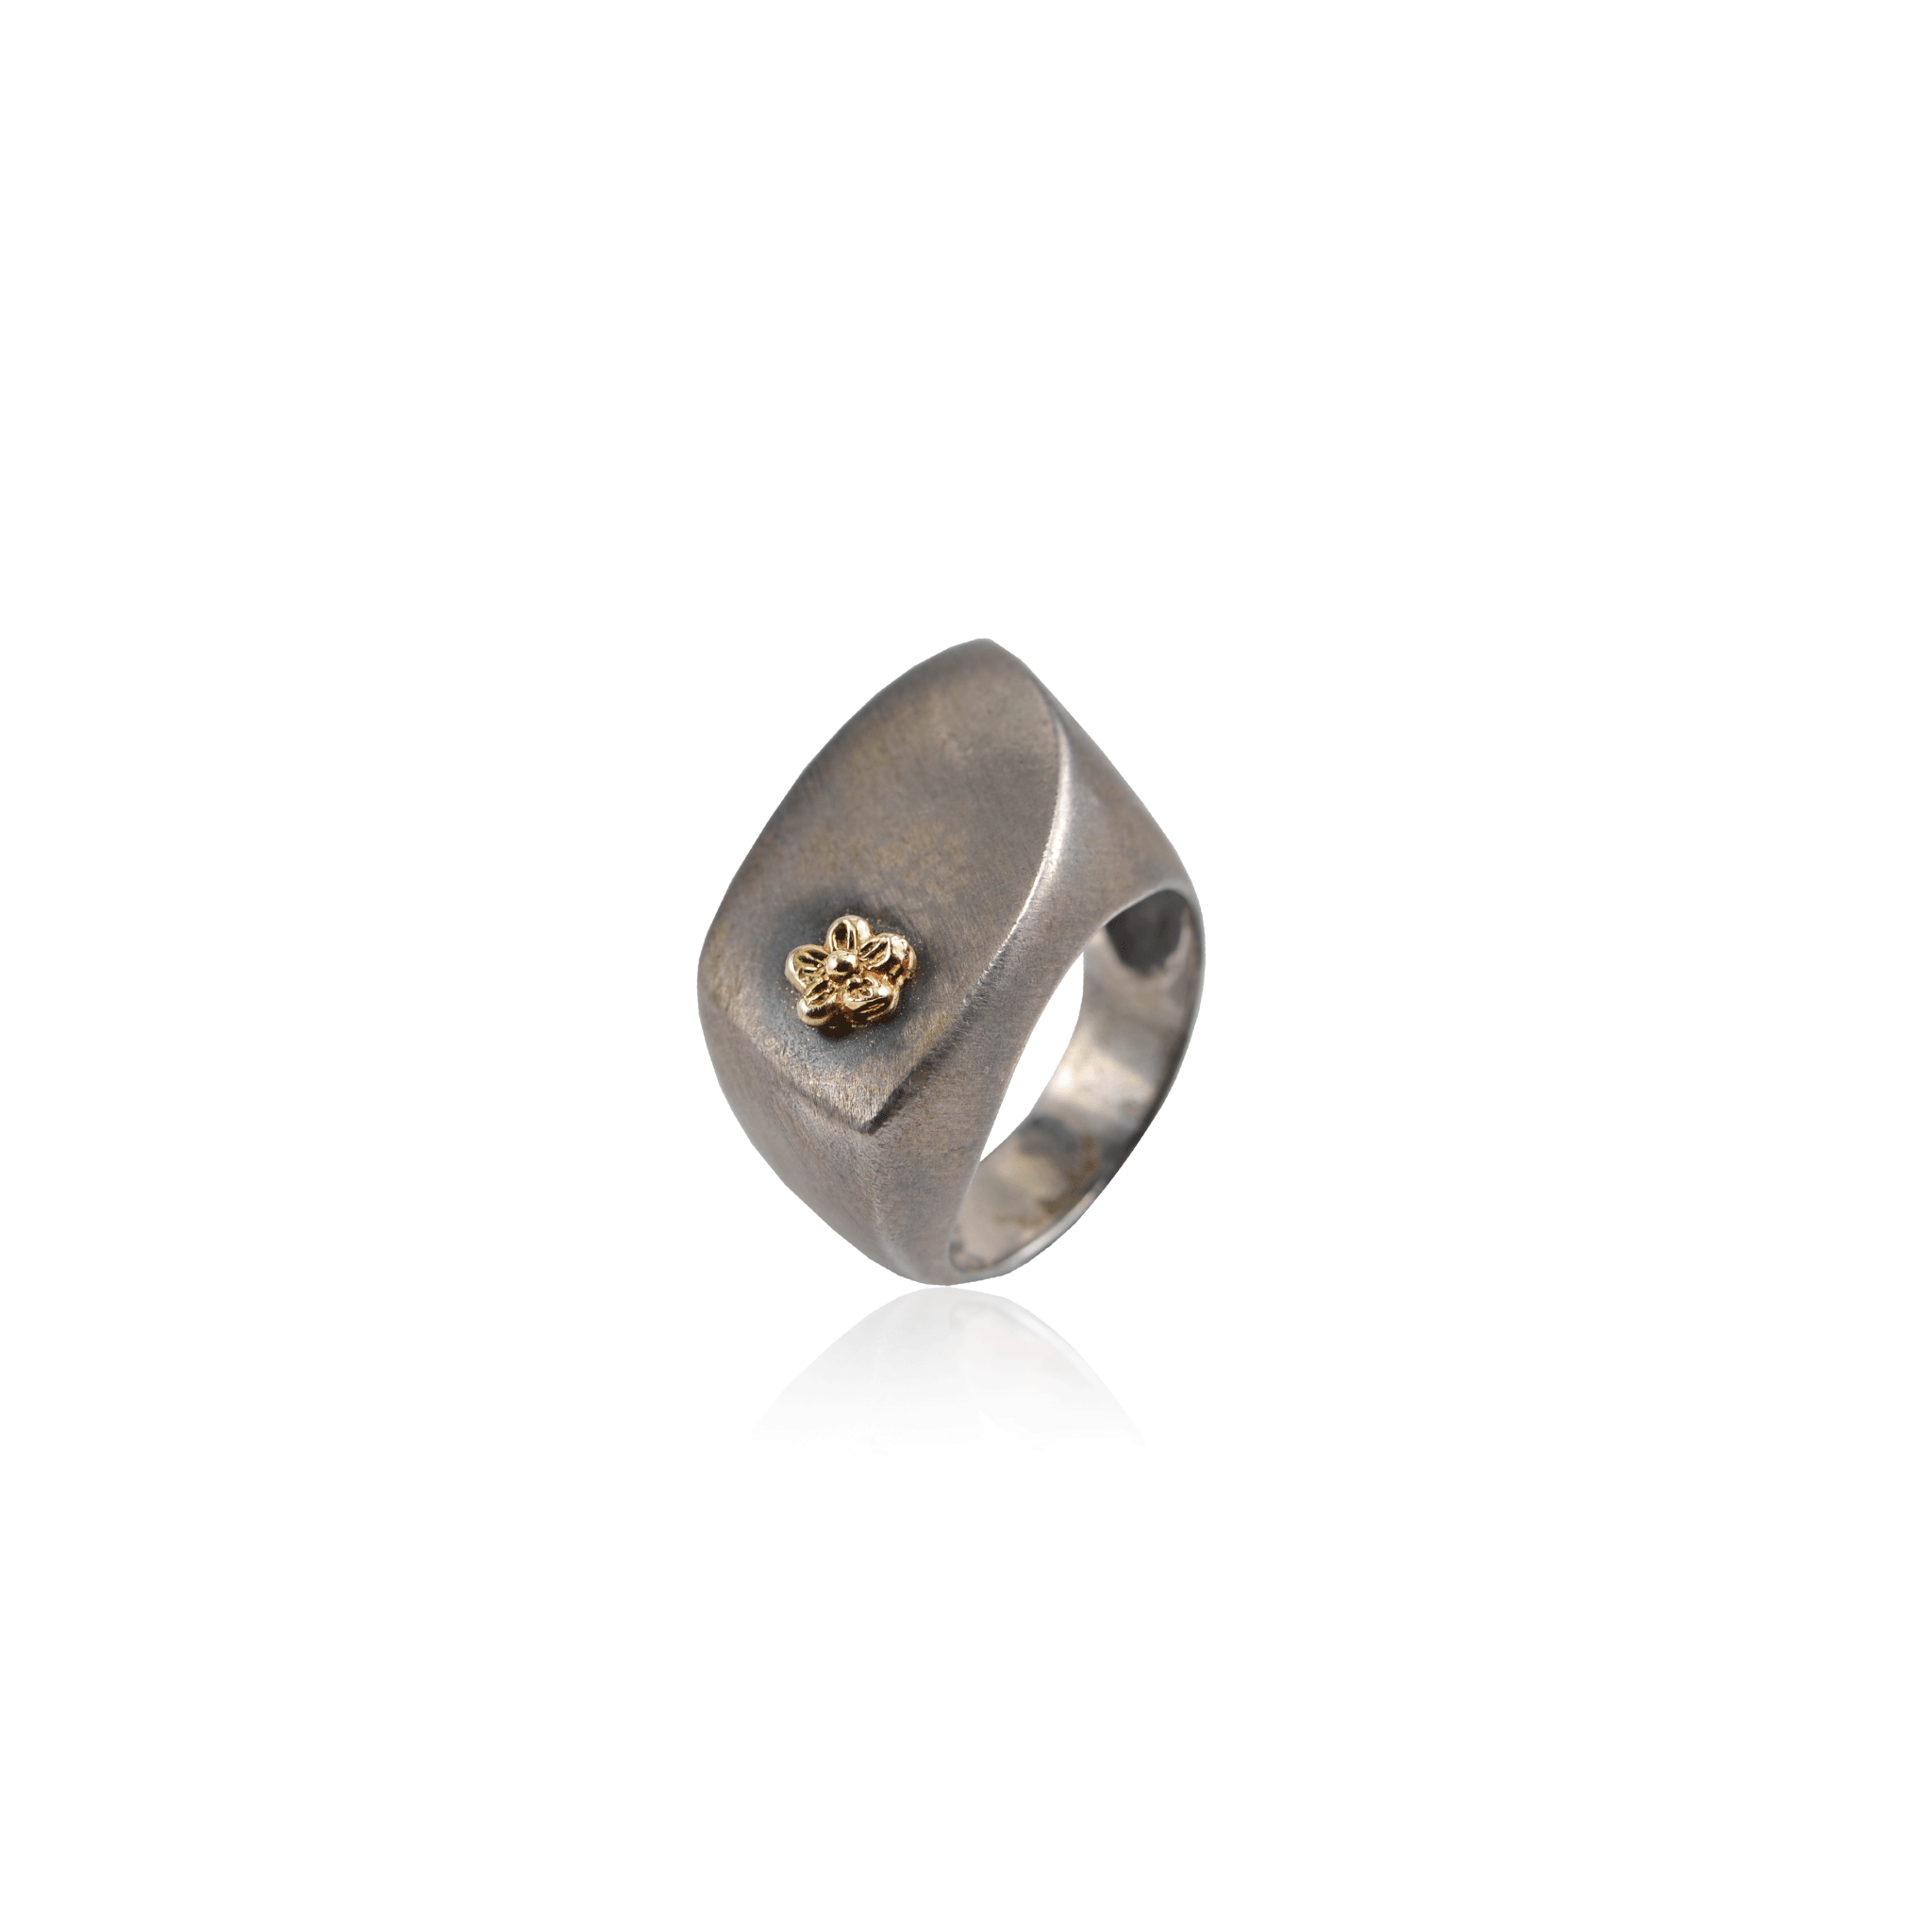 Asymmetrical Sterling Silver Flower Ring